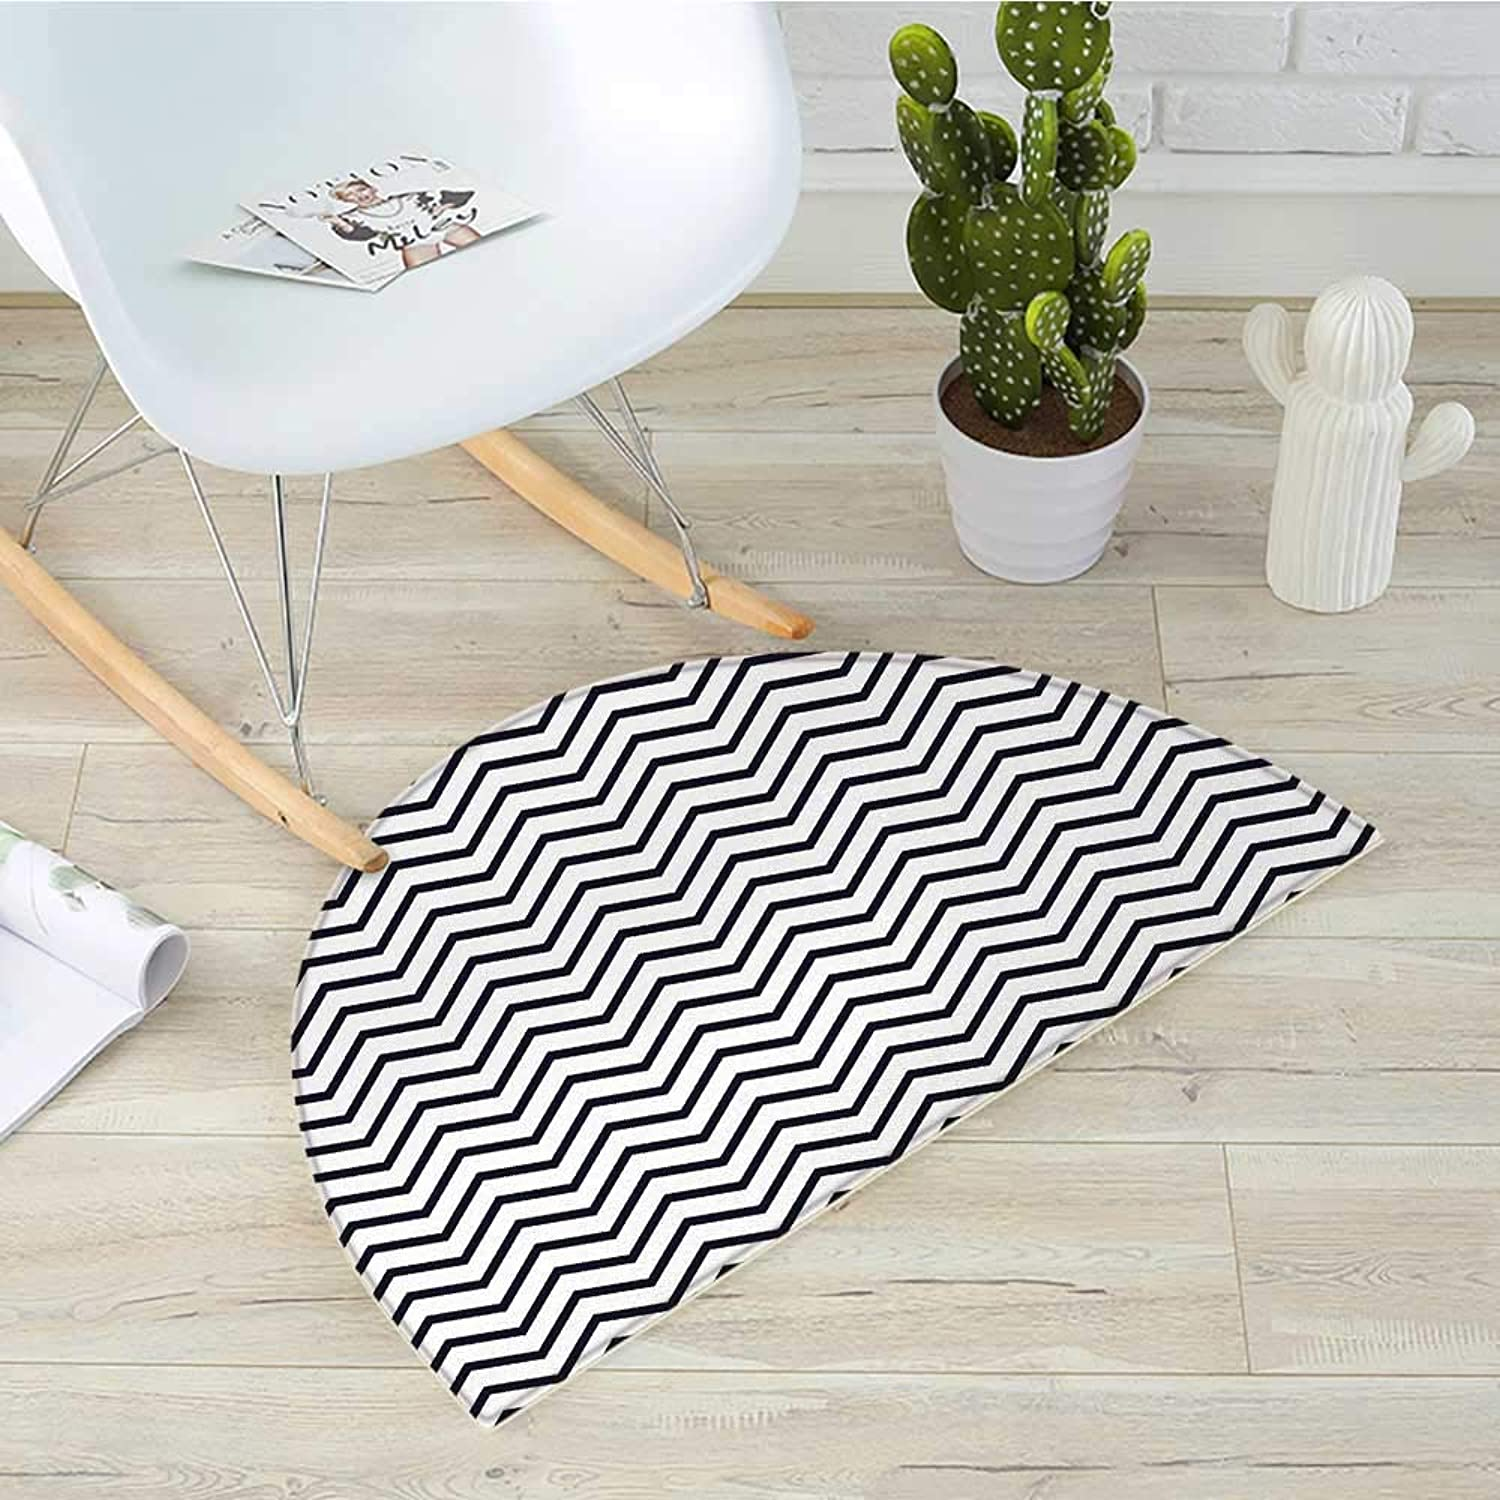 Geometric Half Round Door mats Monochrome Herringbone Pattern Lines Three Dimensional Effect Illustration Bathroom Mat H 31.5  xD 47.2  Dark bluee White